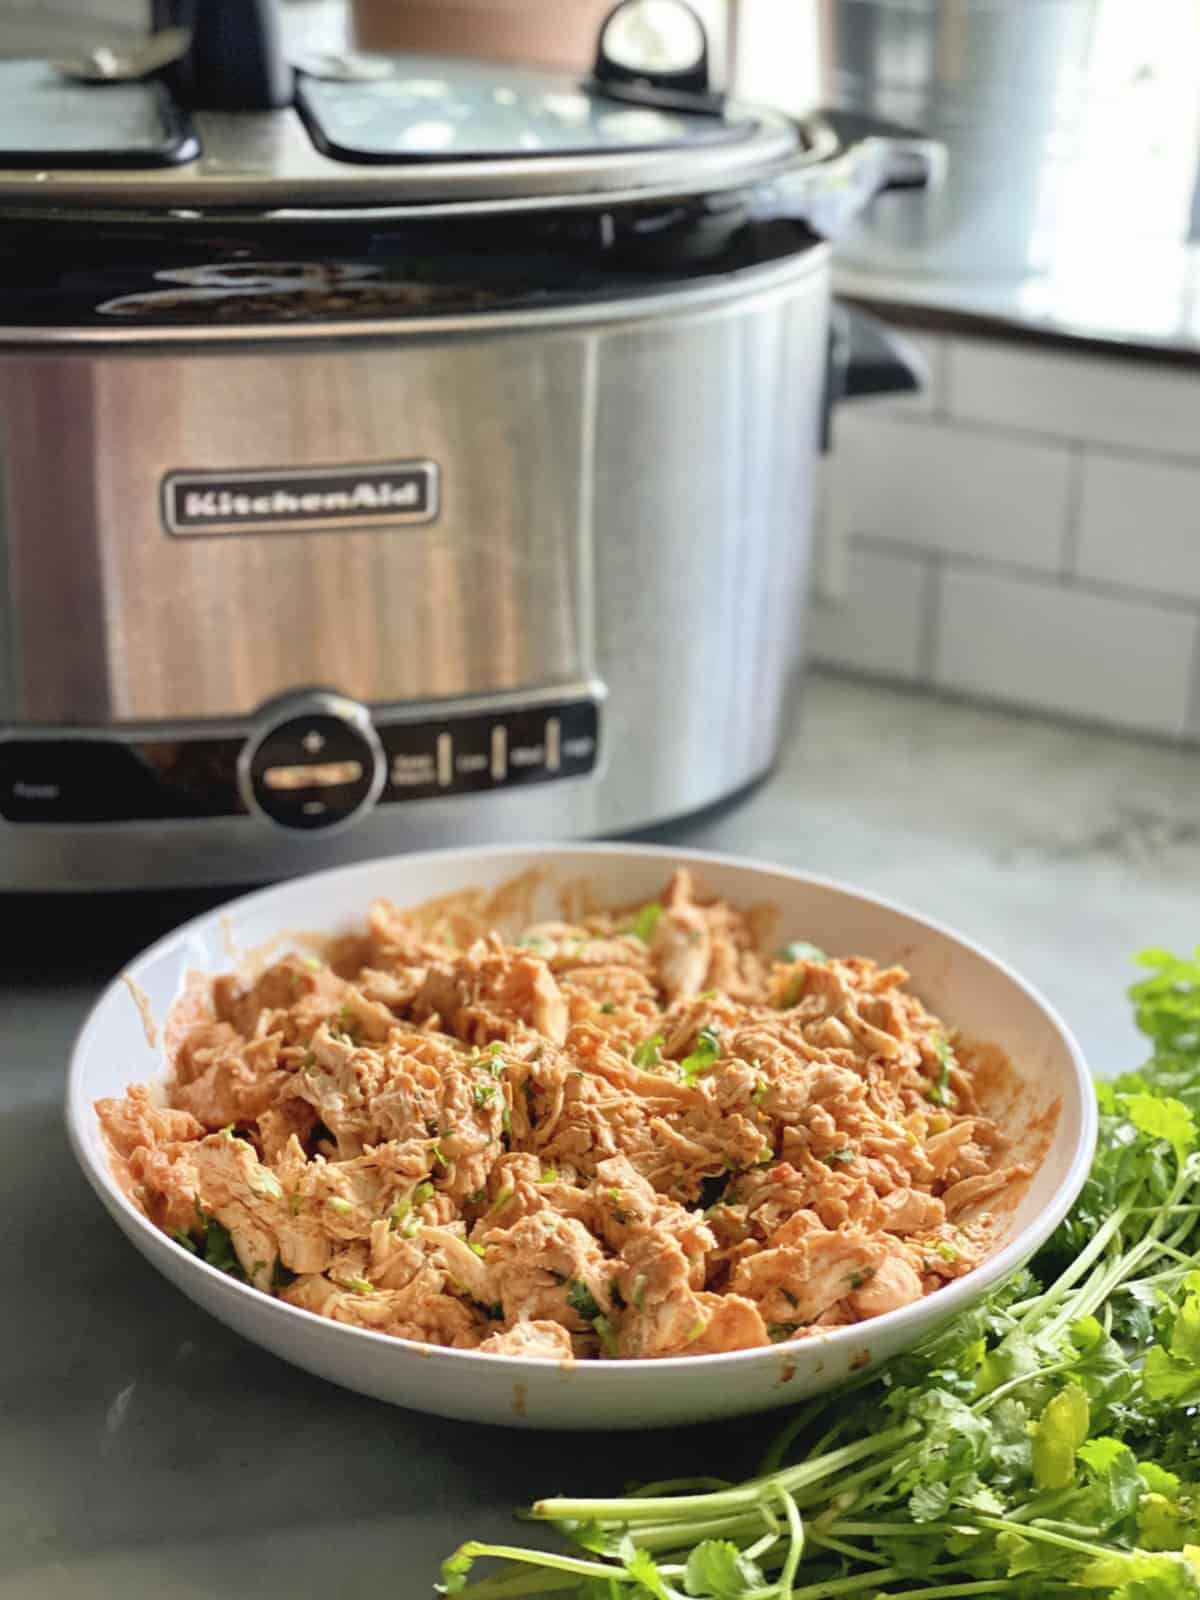 Shredded Chicken with cilantro in a white bowl with slow cooker in background.